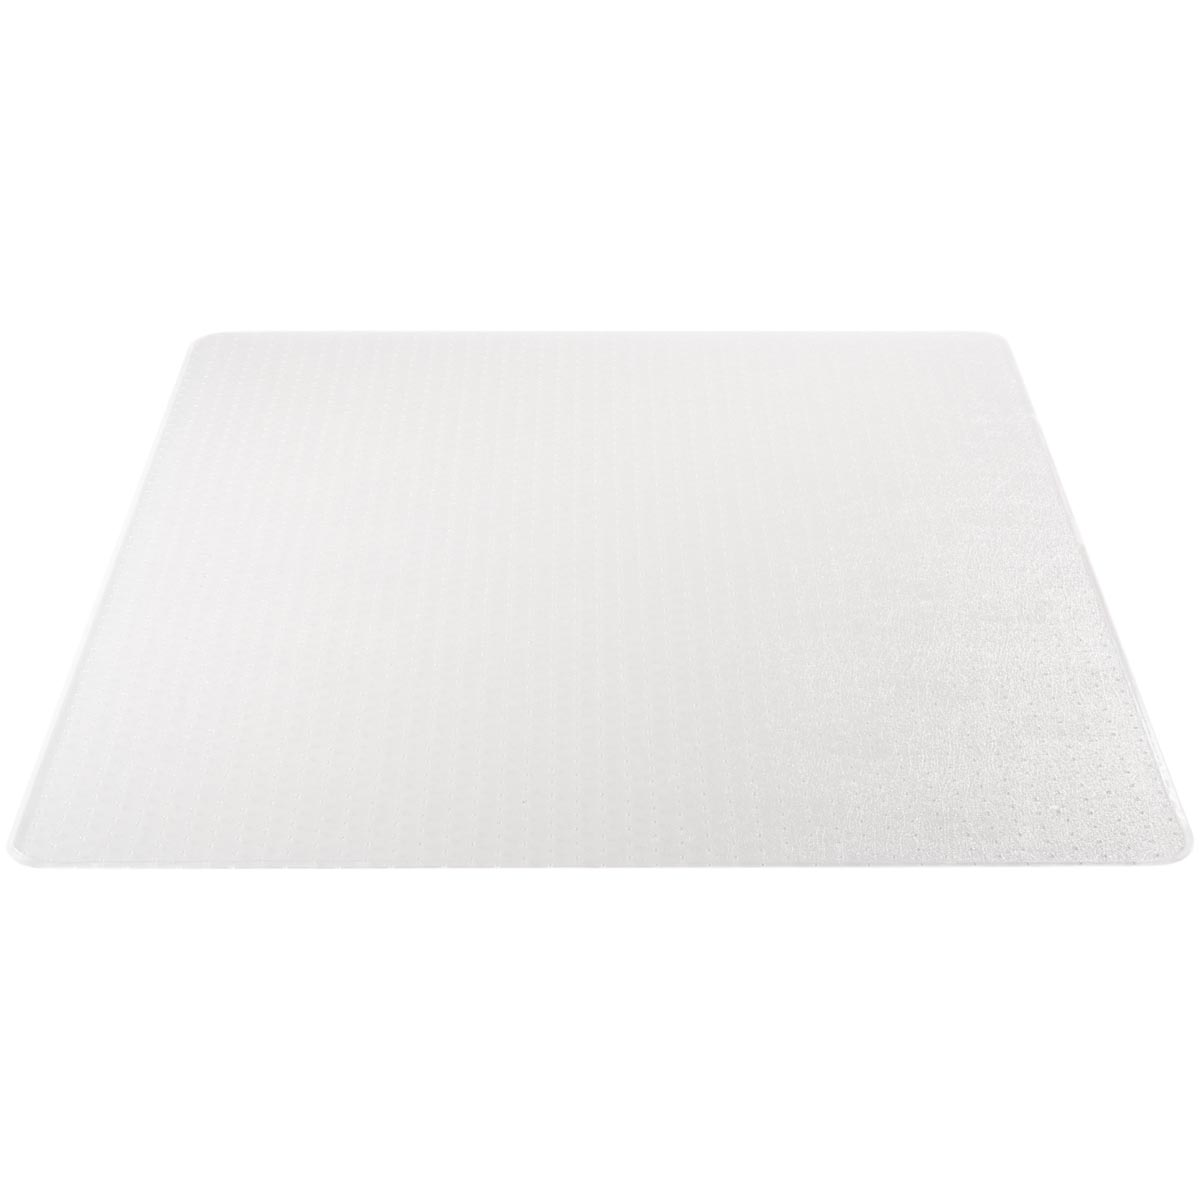 clear chair mat cheap glider rocking duramat for low pile carpet 46 quotw x 60 quotl